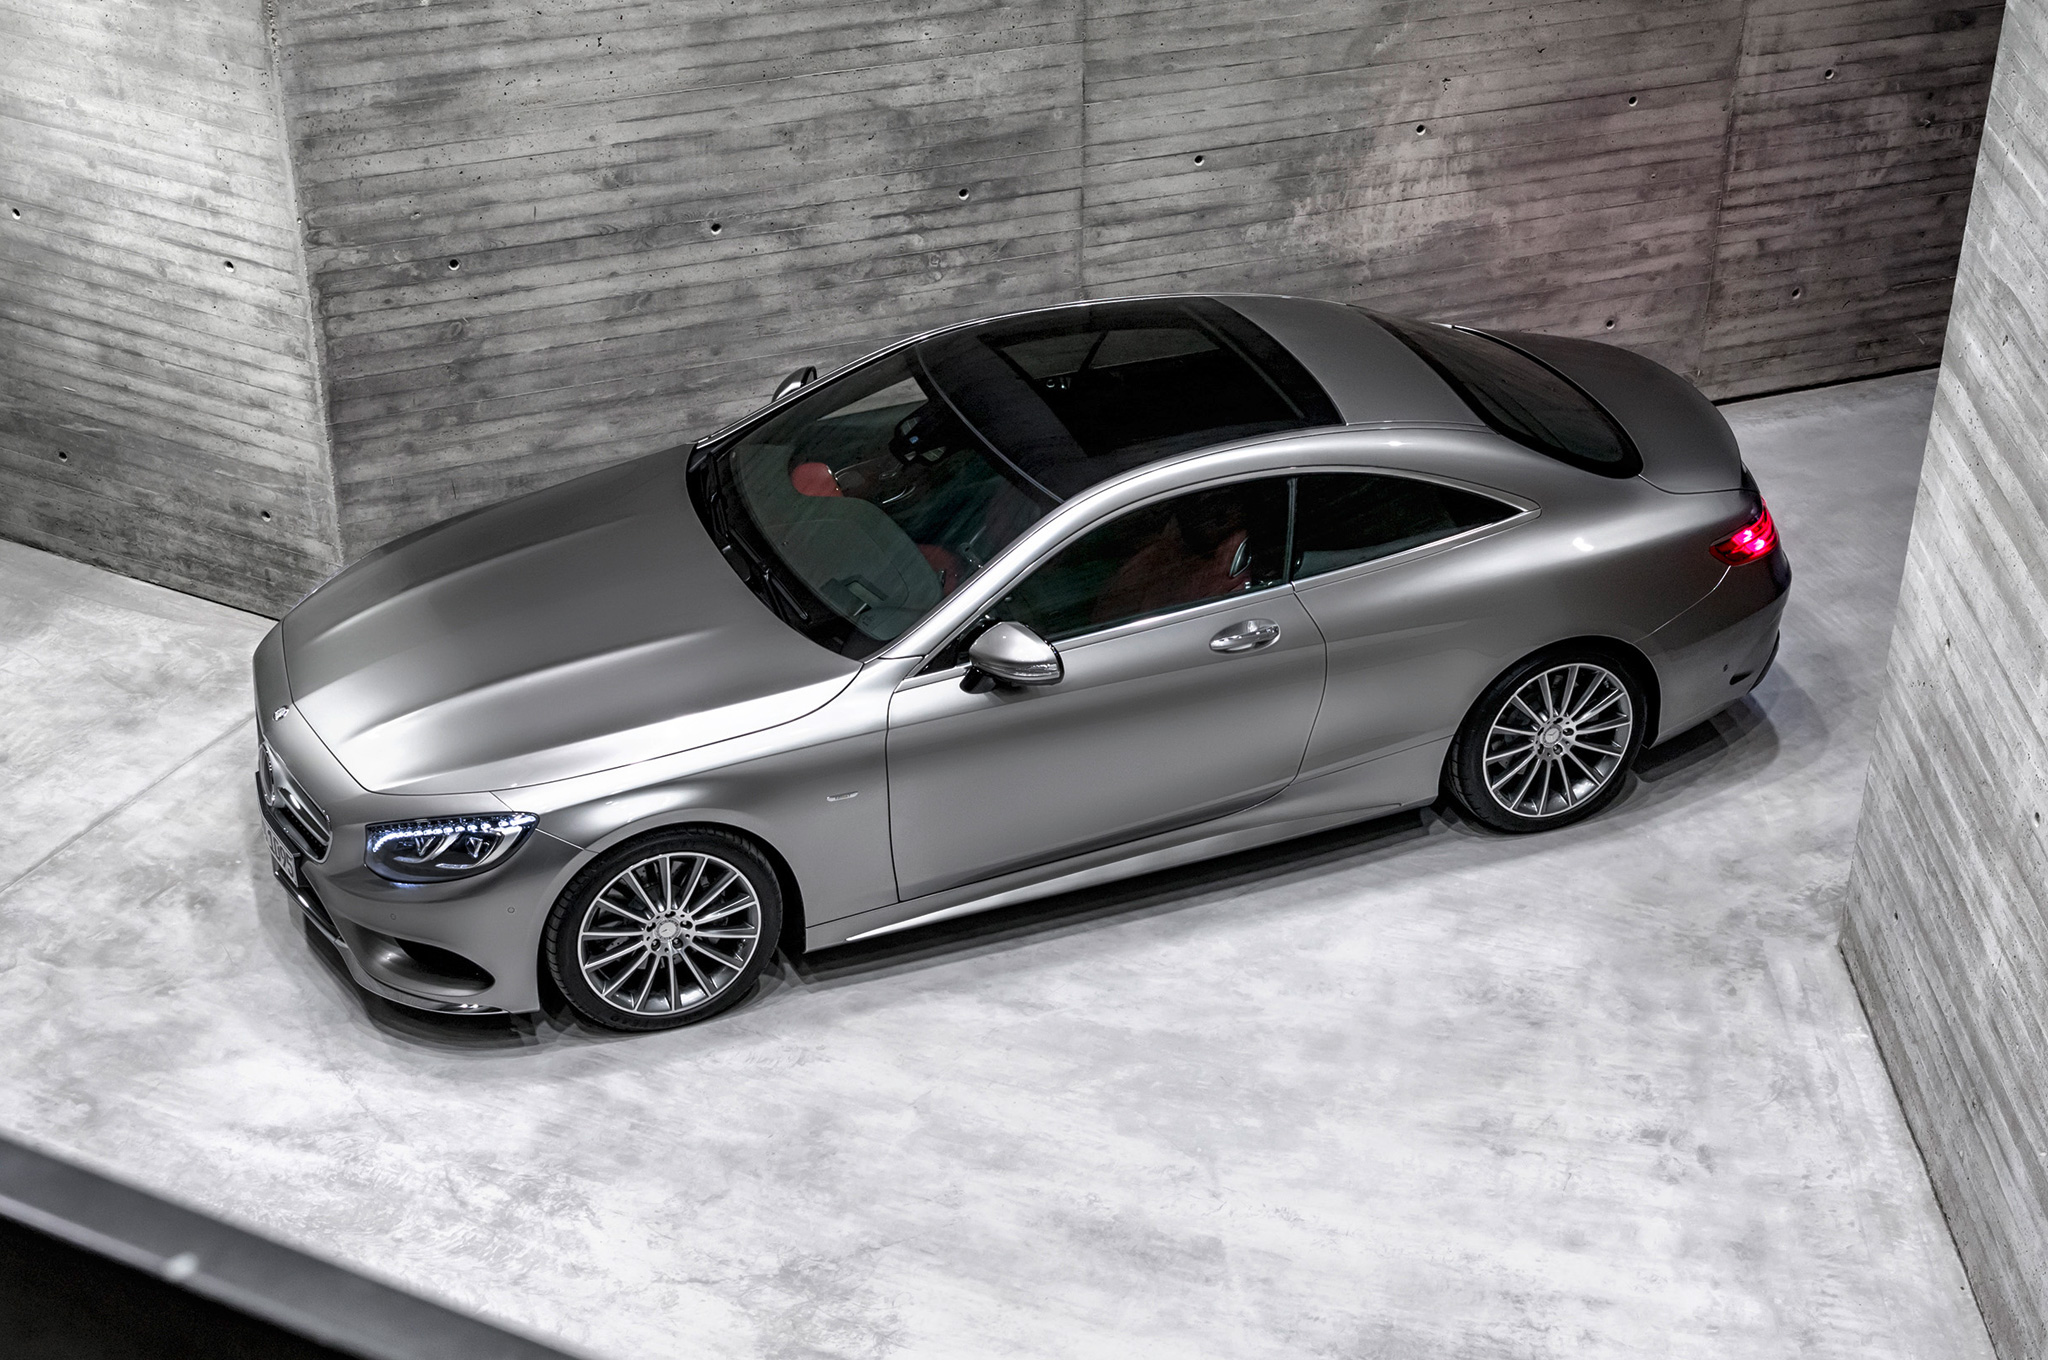 2015 Mercedes-Benz S-Class Coupe Priced From $120,825 to $231,825 ...